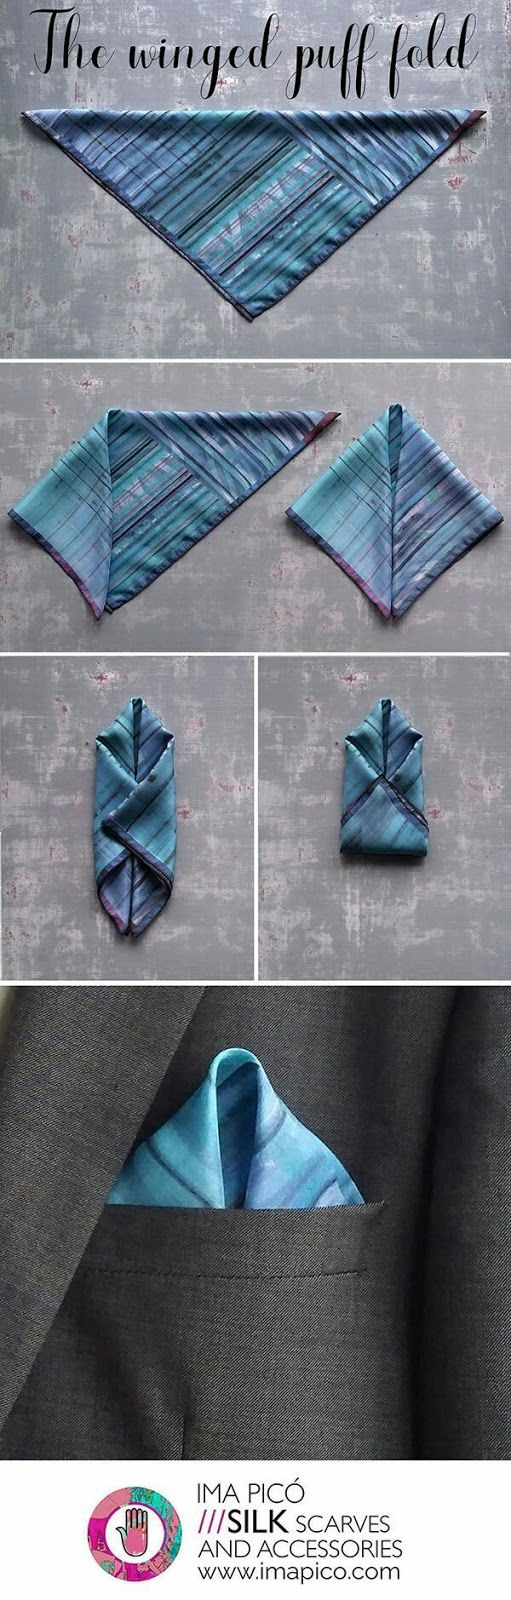 BlackDot: Men's Fashion: How to Fold a Pocket Square